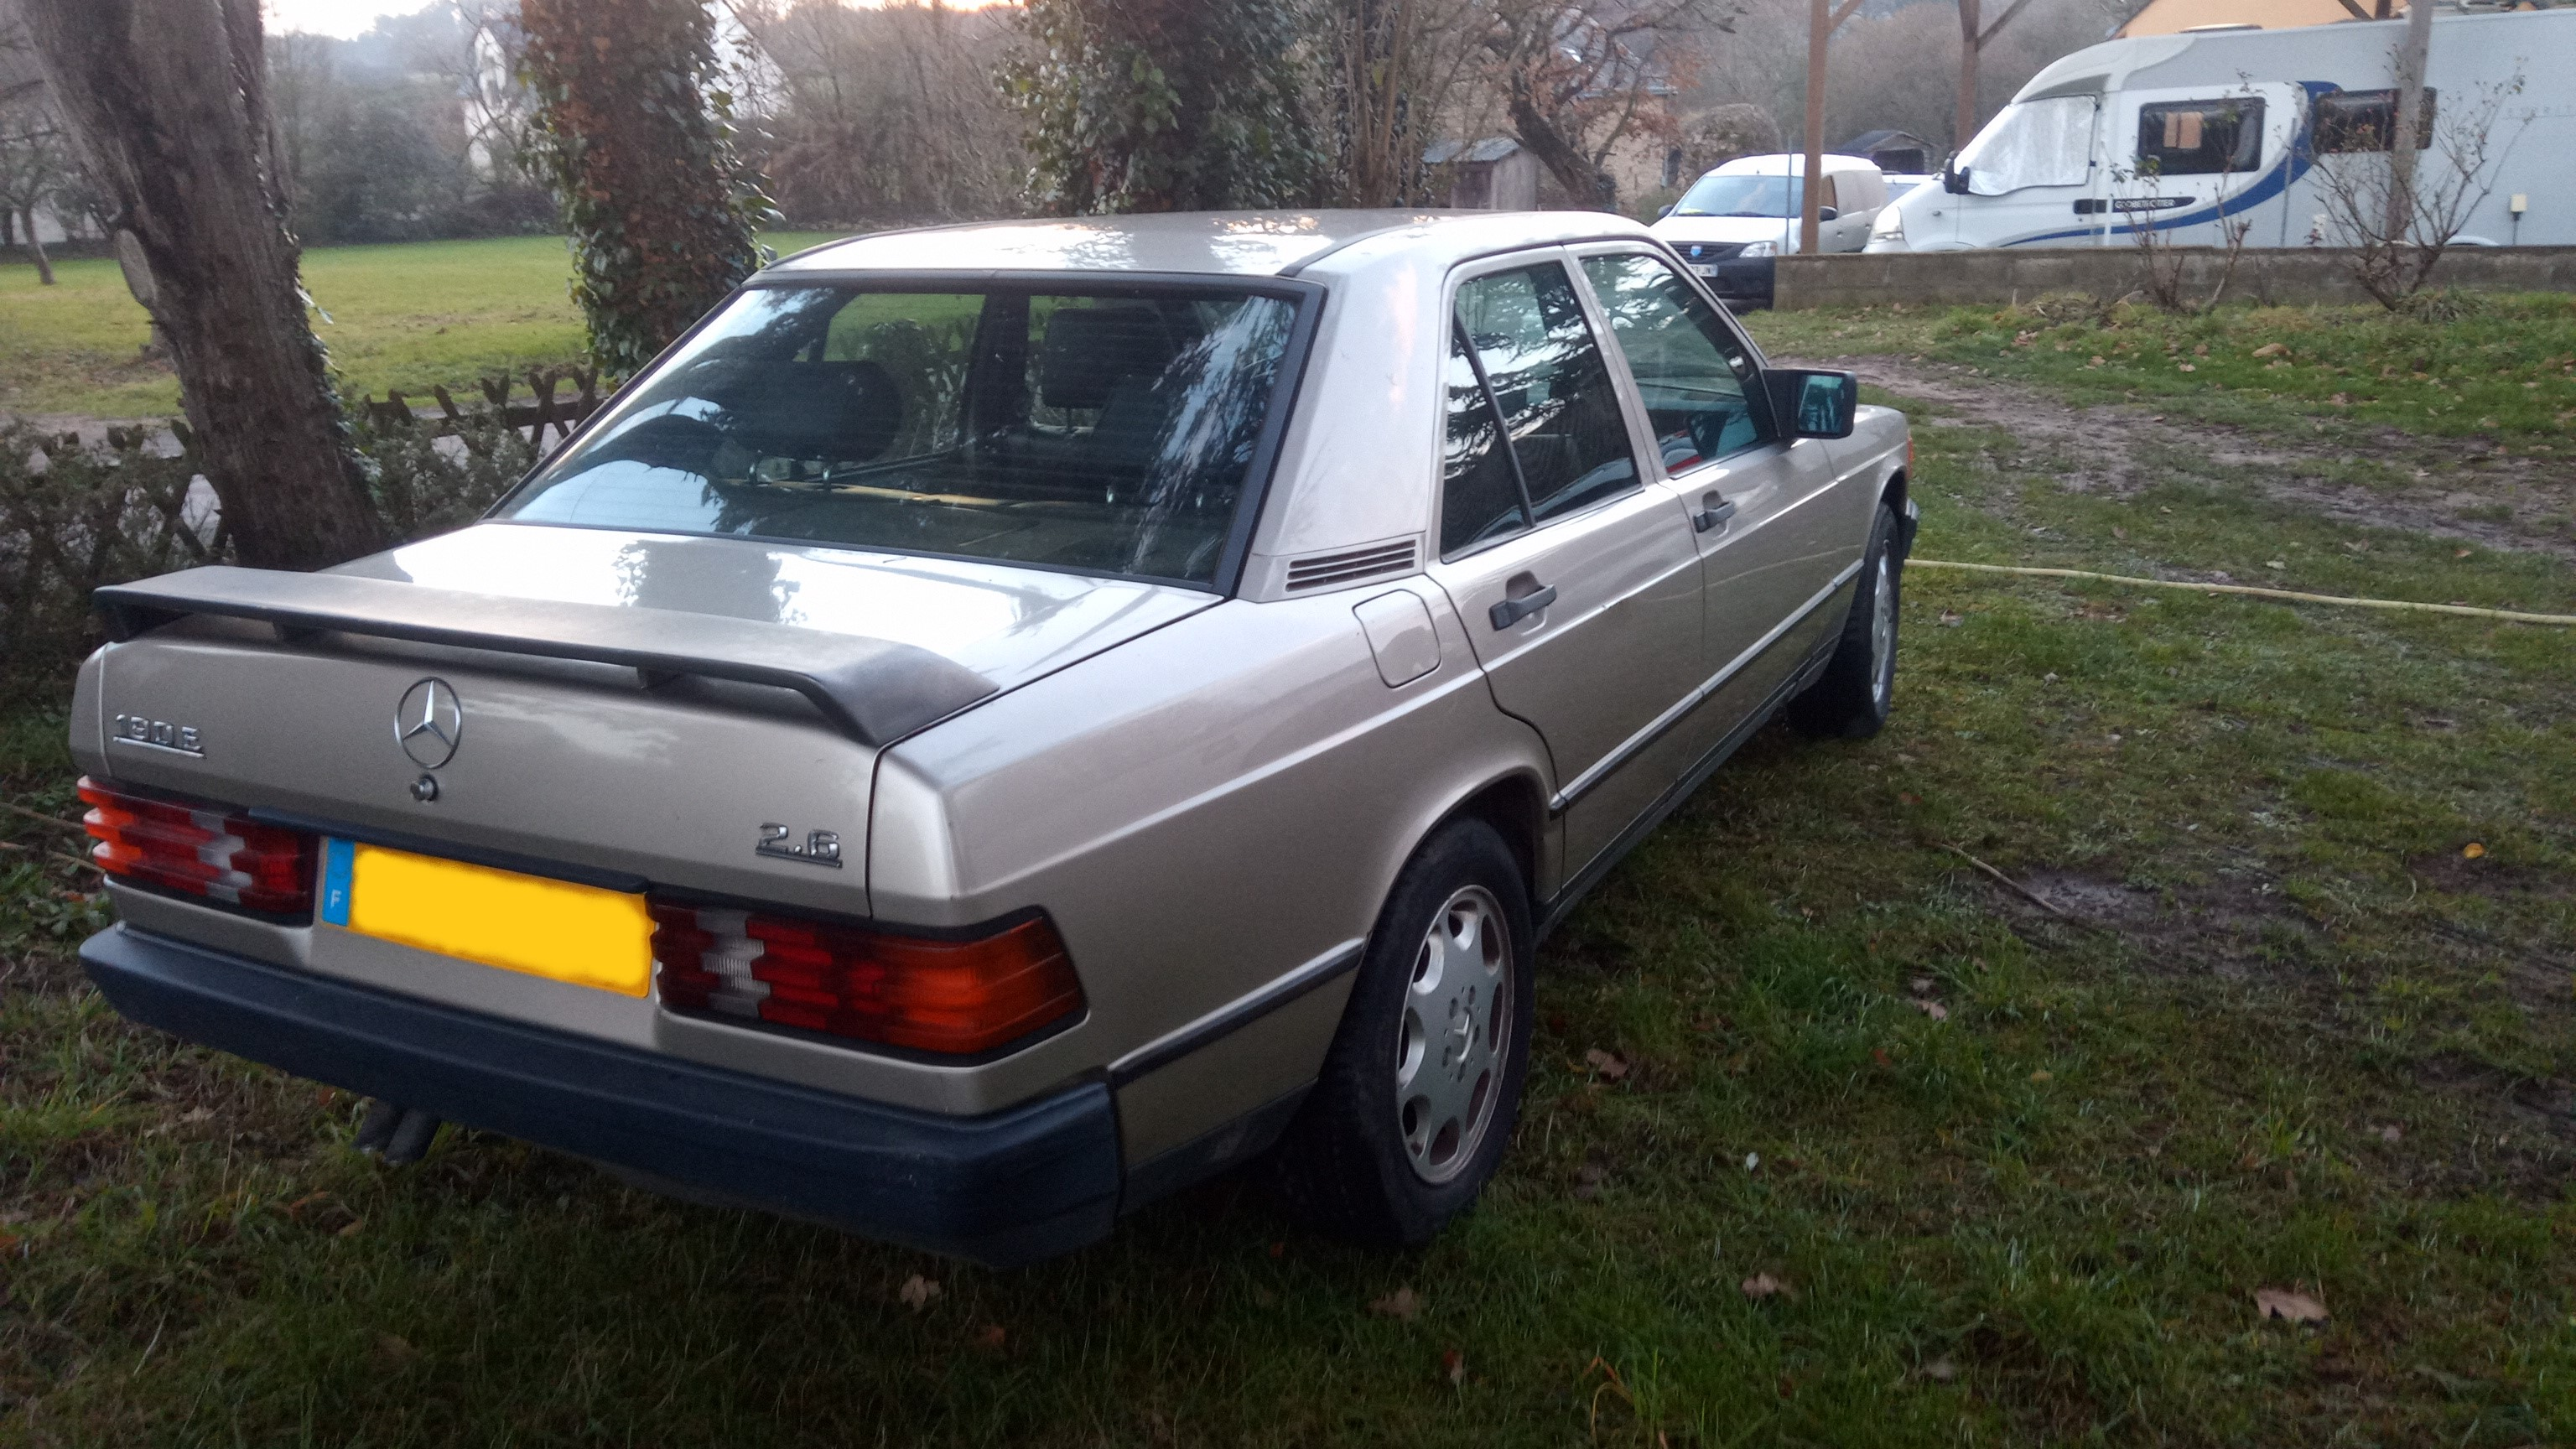 Mercedes 190 e 2.6 essence 6 cylindres 1988